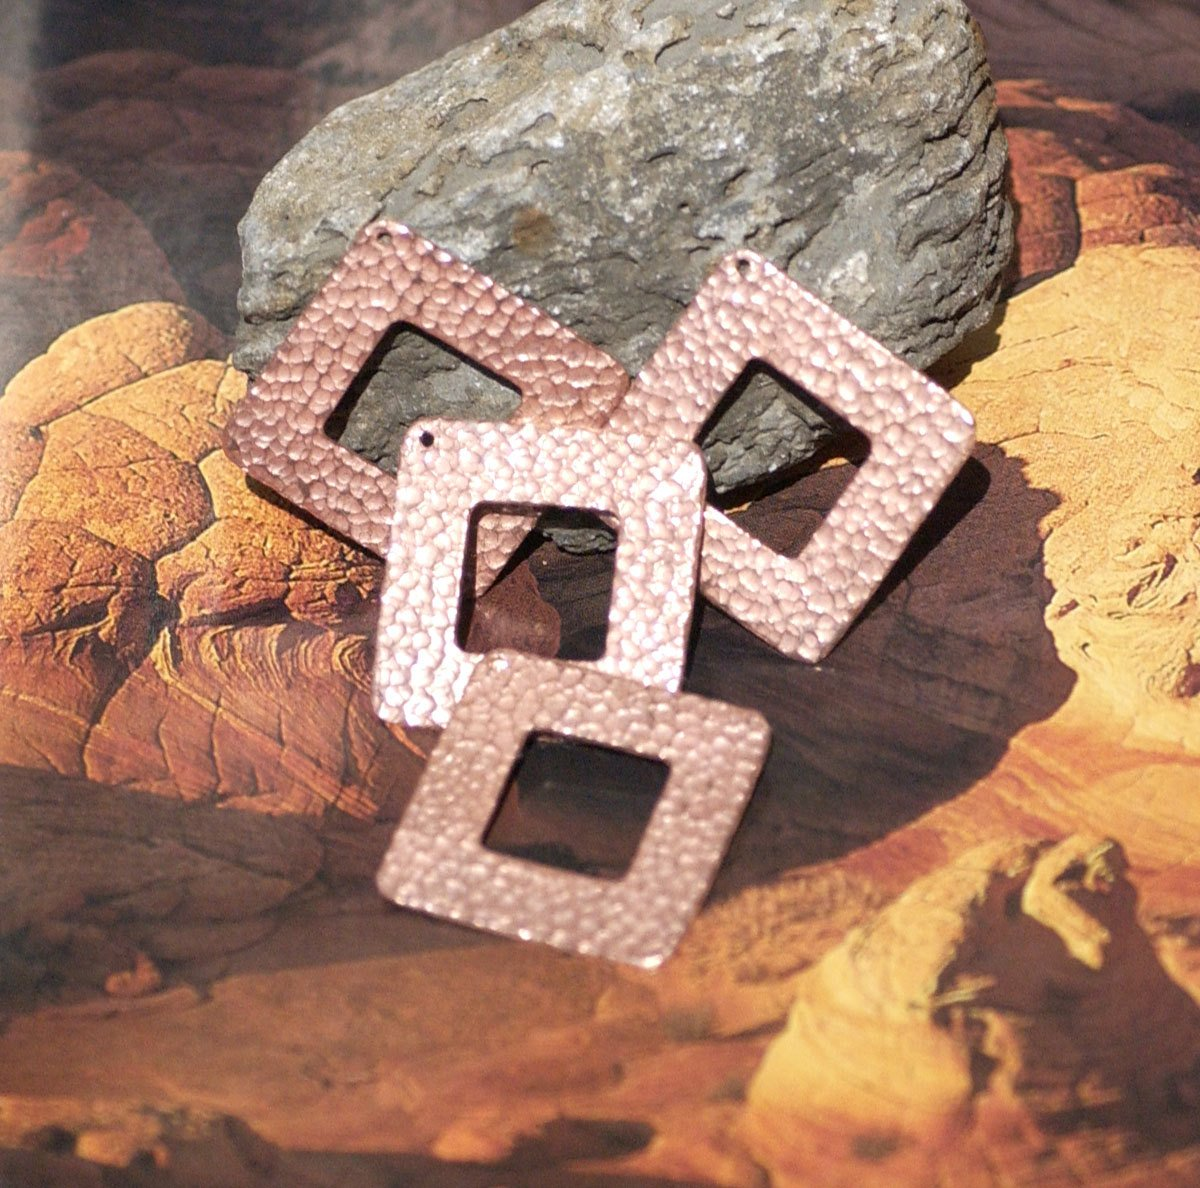 Hammered Copper Square 32mm Blank Cutout with hole for Enameling Stamping Texturing Blanks - 4 pieces